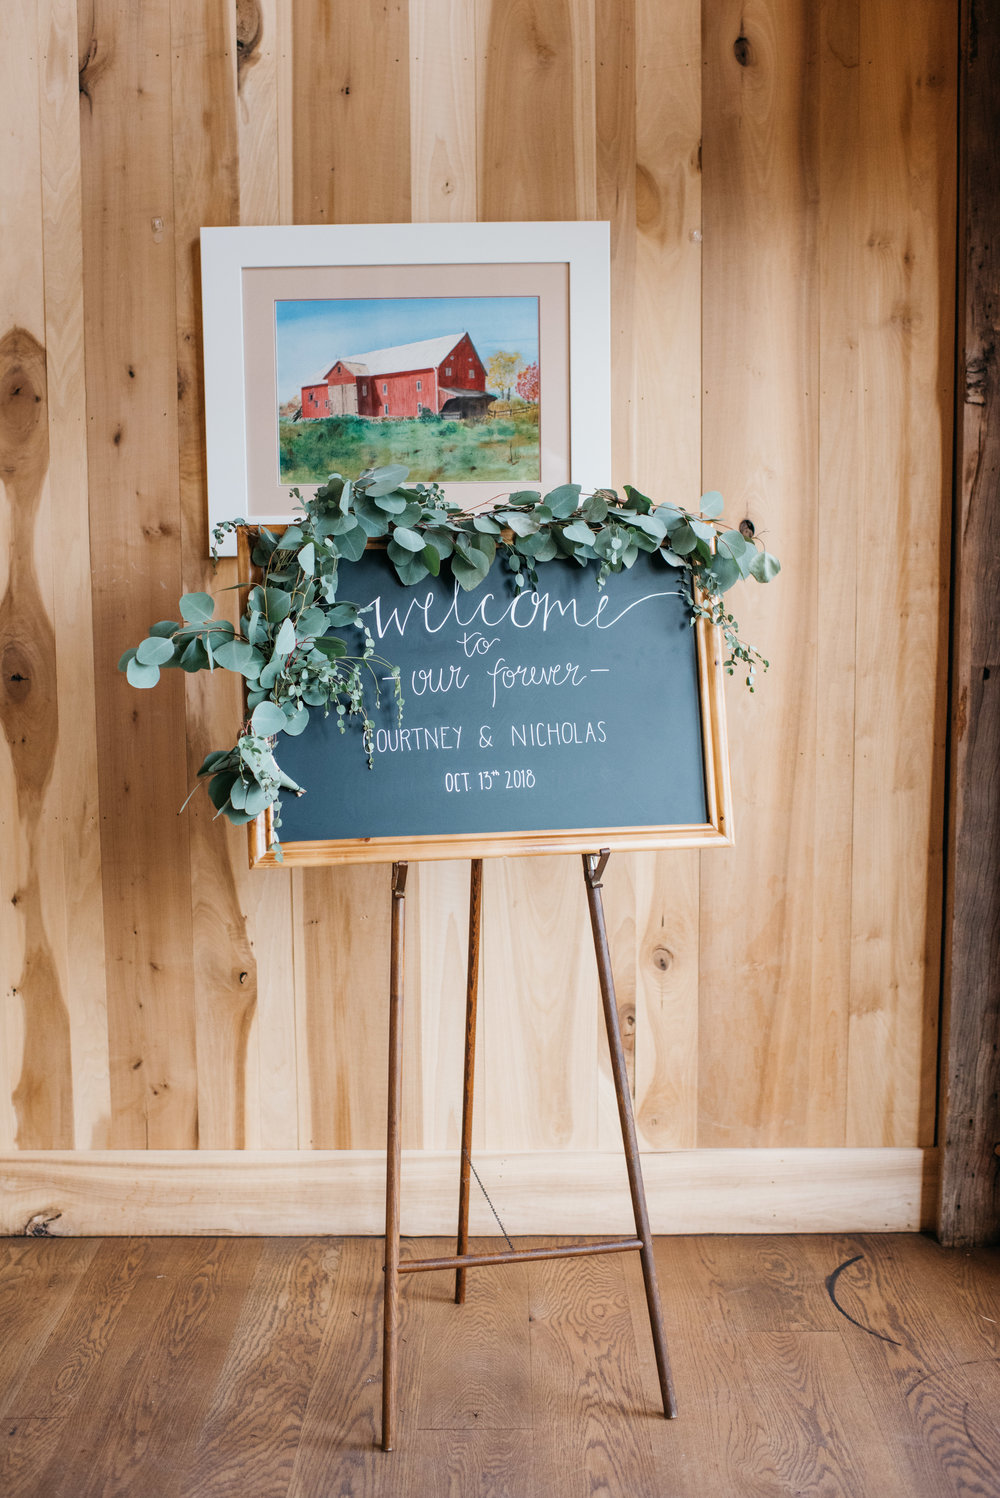 lindley farmstead at chatham hills wedding indianapolis wedding photographer